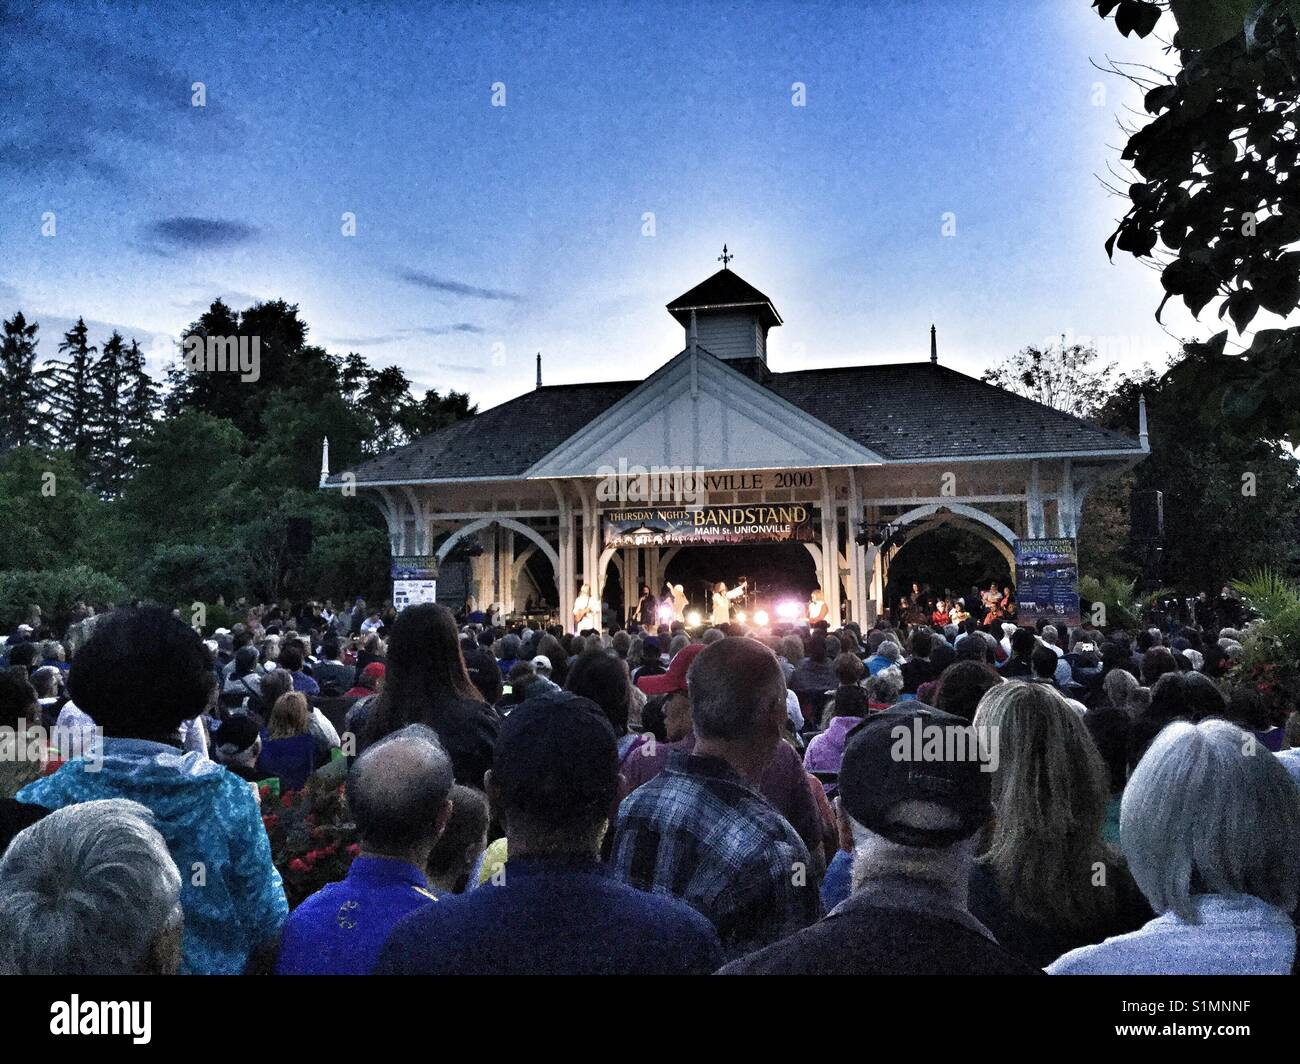 Outdoor music concert at the bandstand in Unionville, Ontario. - Stock Image